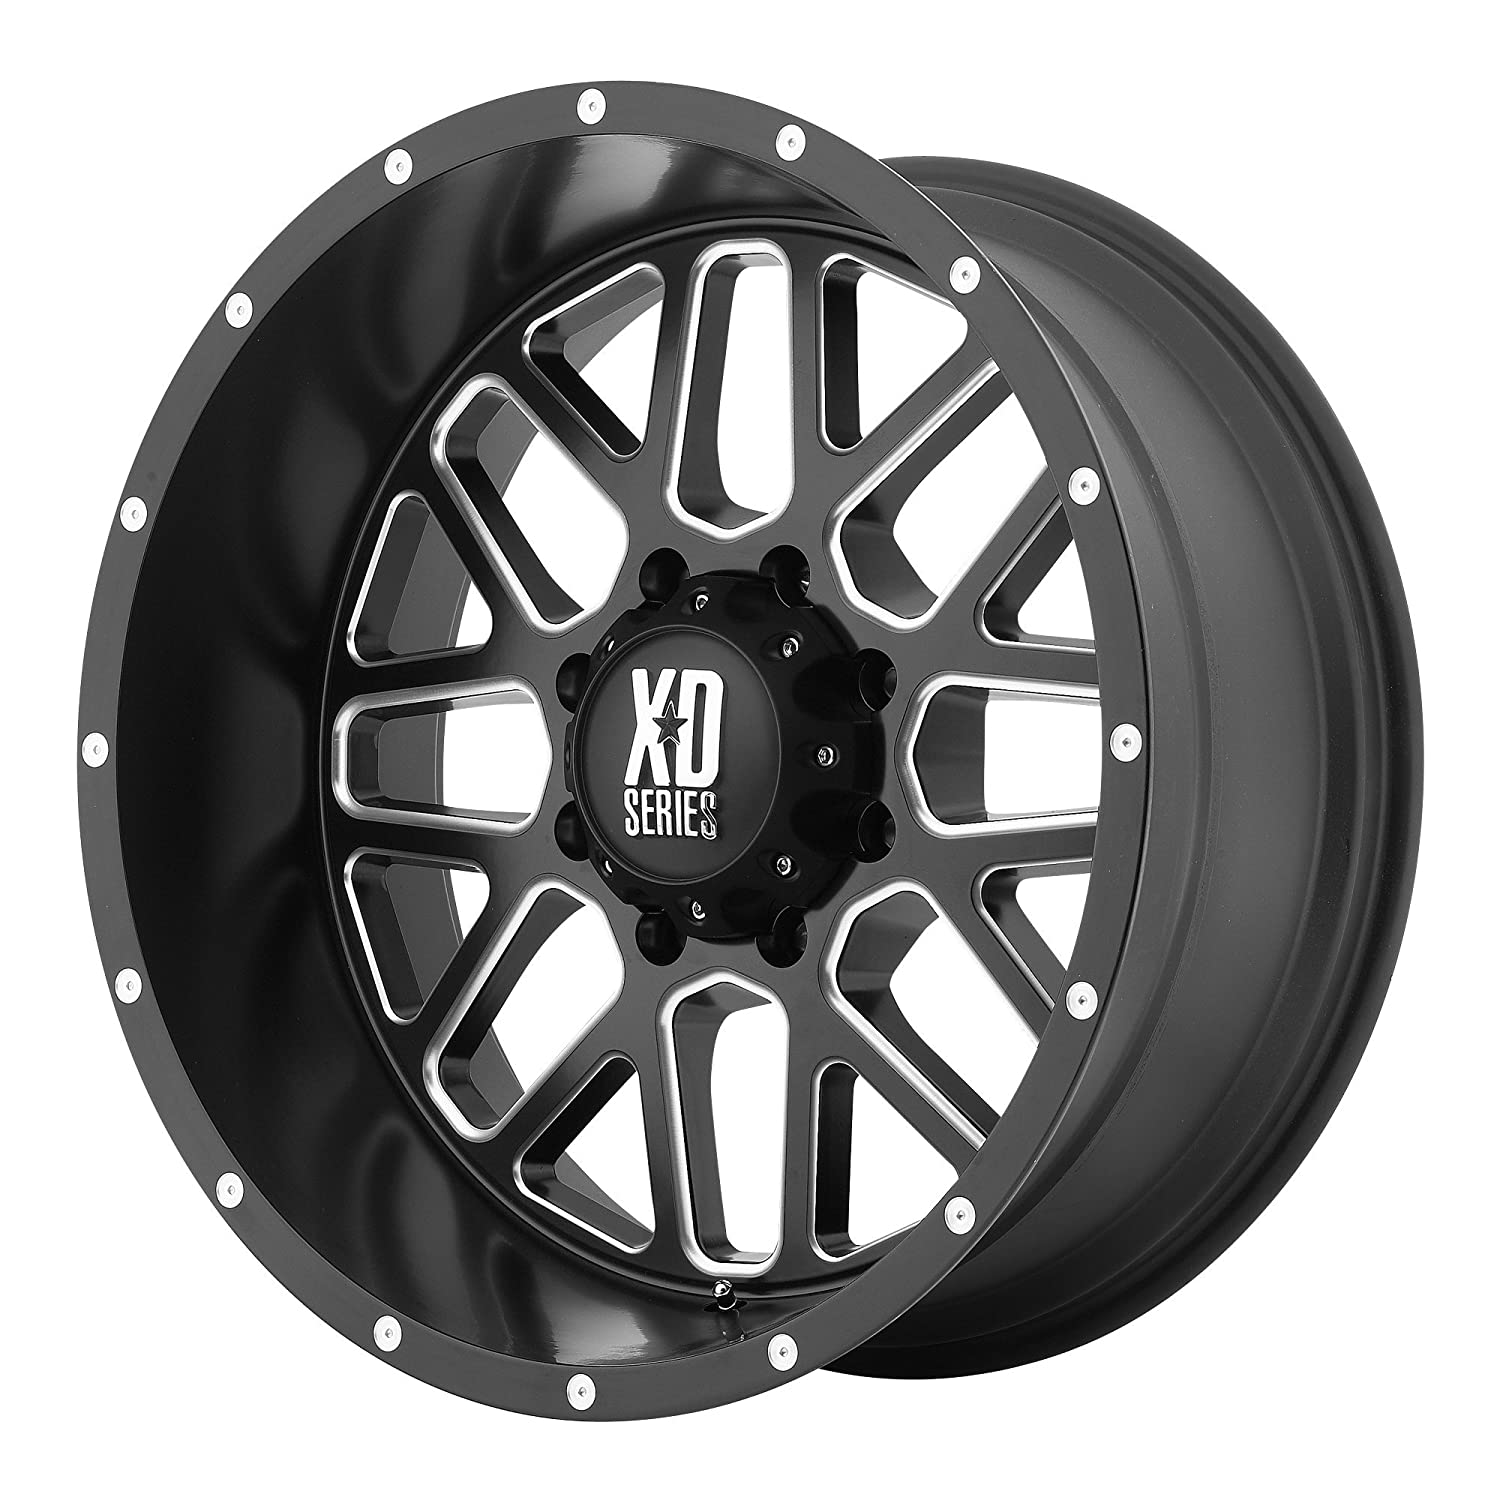 XD Series by KMC Wheels XD820 Grenade Satin Black Wheel with Milled Spokes 20x10//6x139.7mm, -24mm offset